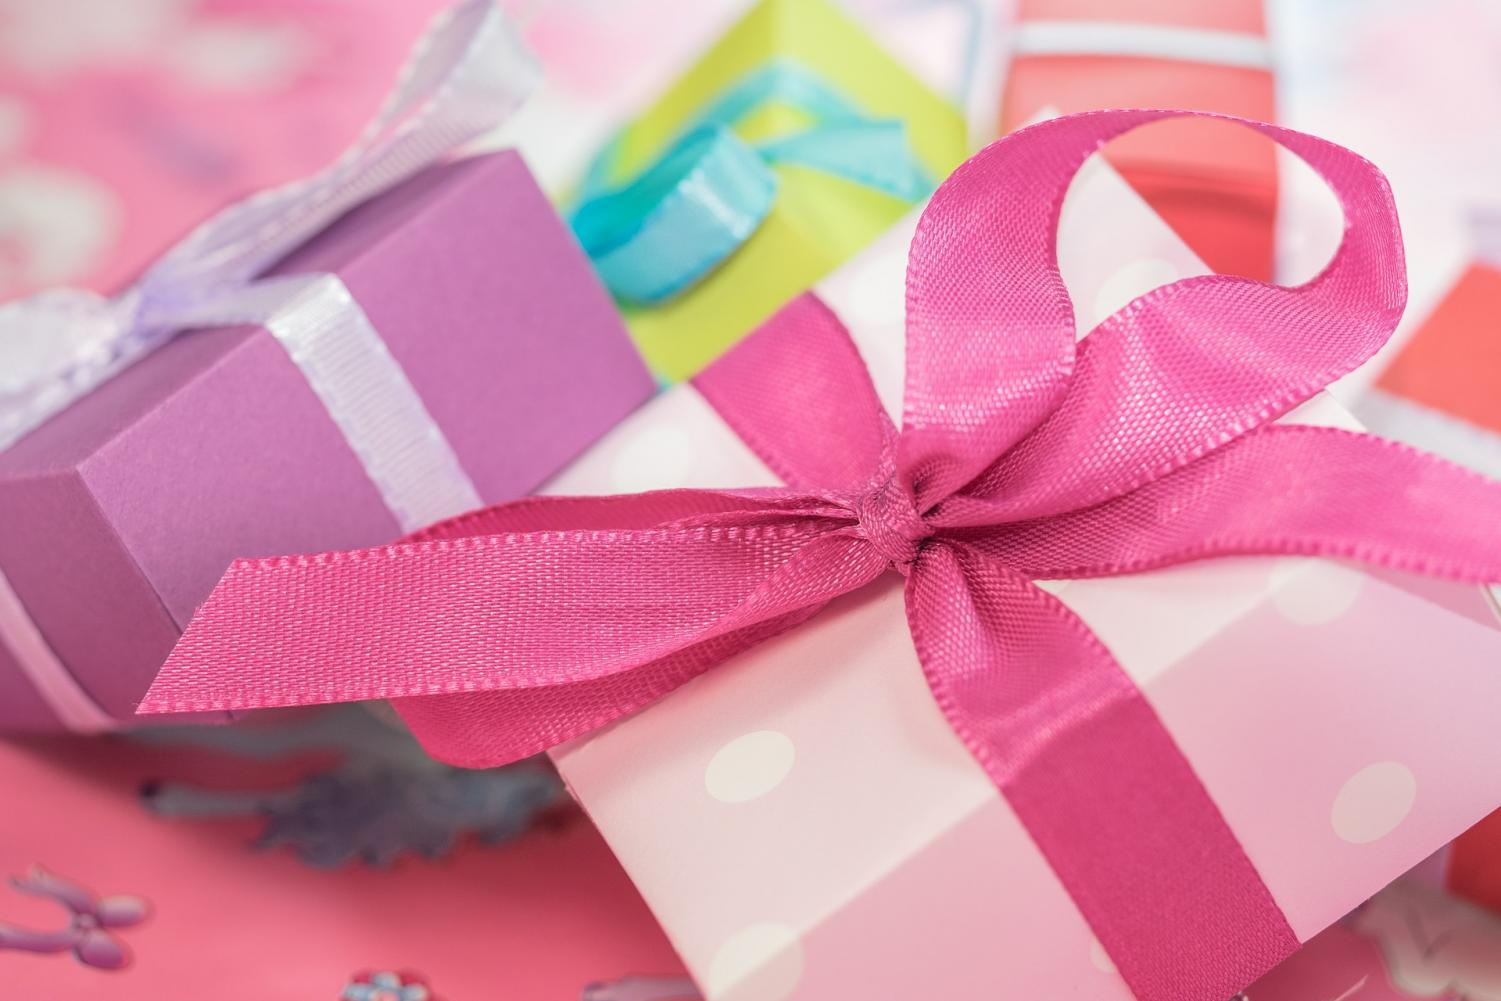 Many student wish the best for their friends. Gift-giving isn't most important. Spending time together counts most.